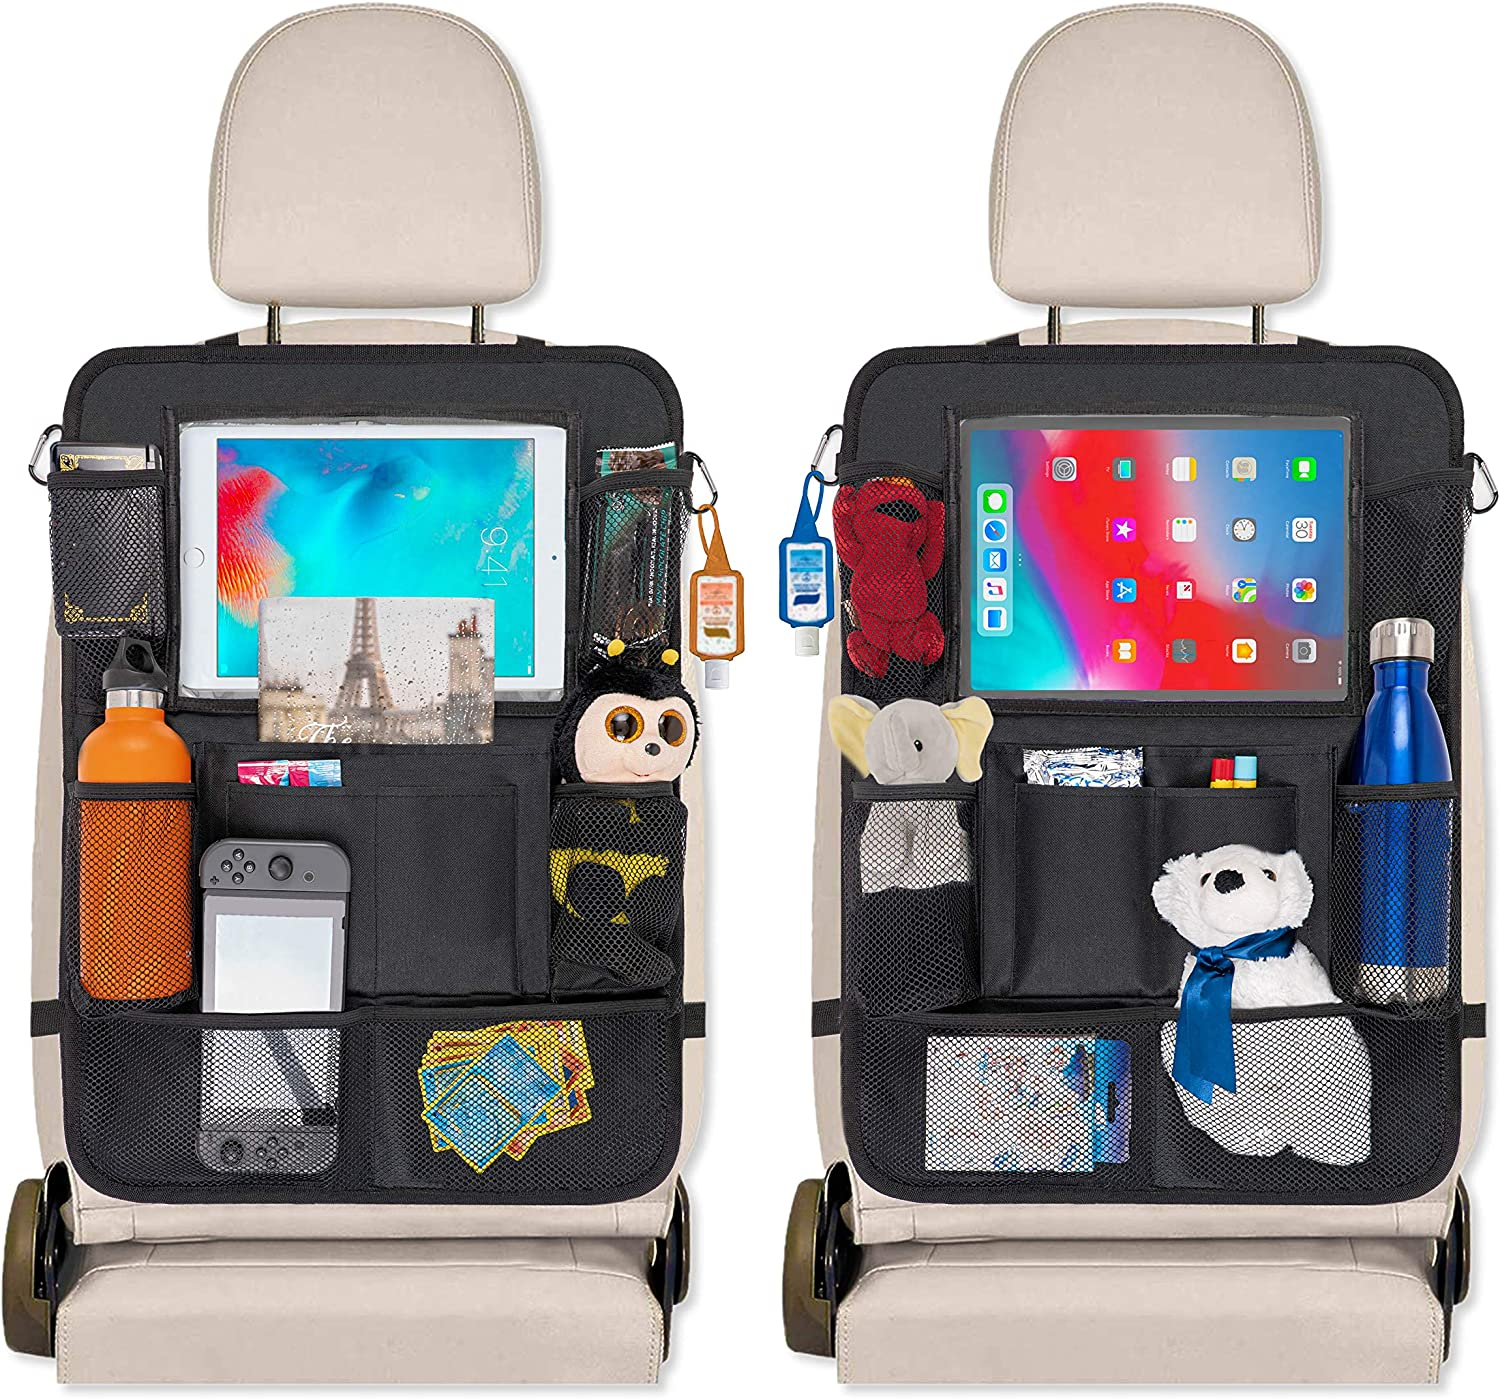 Car Seat Organizer for Toddlers and Big Kids with Kick Mats Back Seat Protector - 9 Storage Pockets for Toys, Travels Accessories, Snacks, Cup Holder and 10